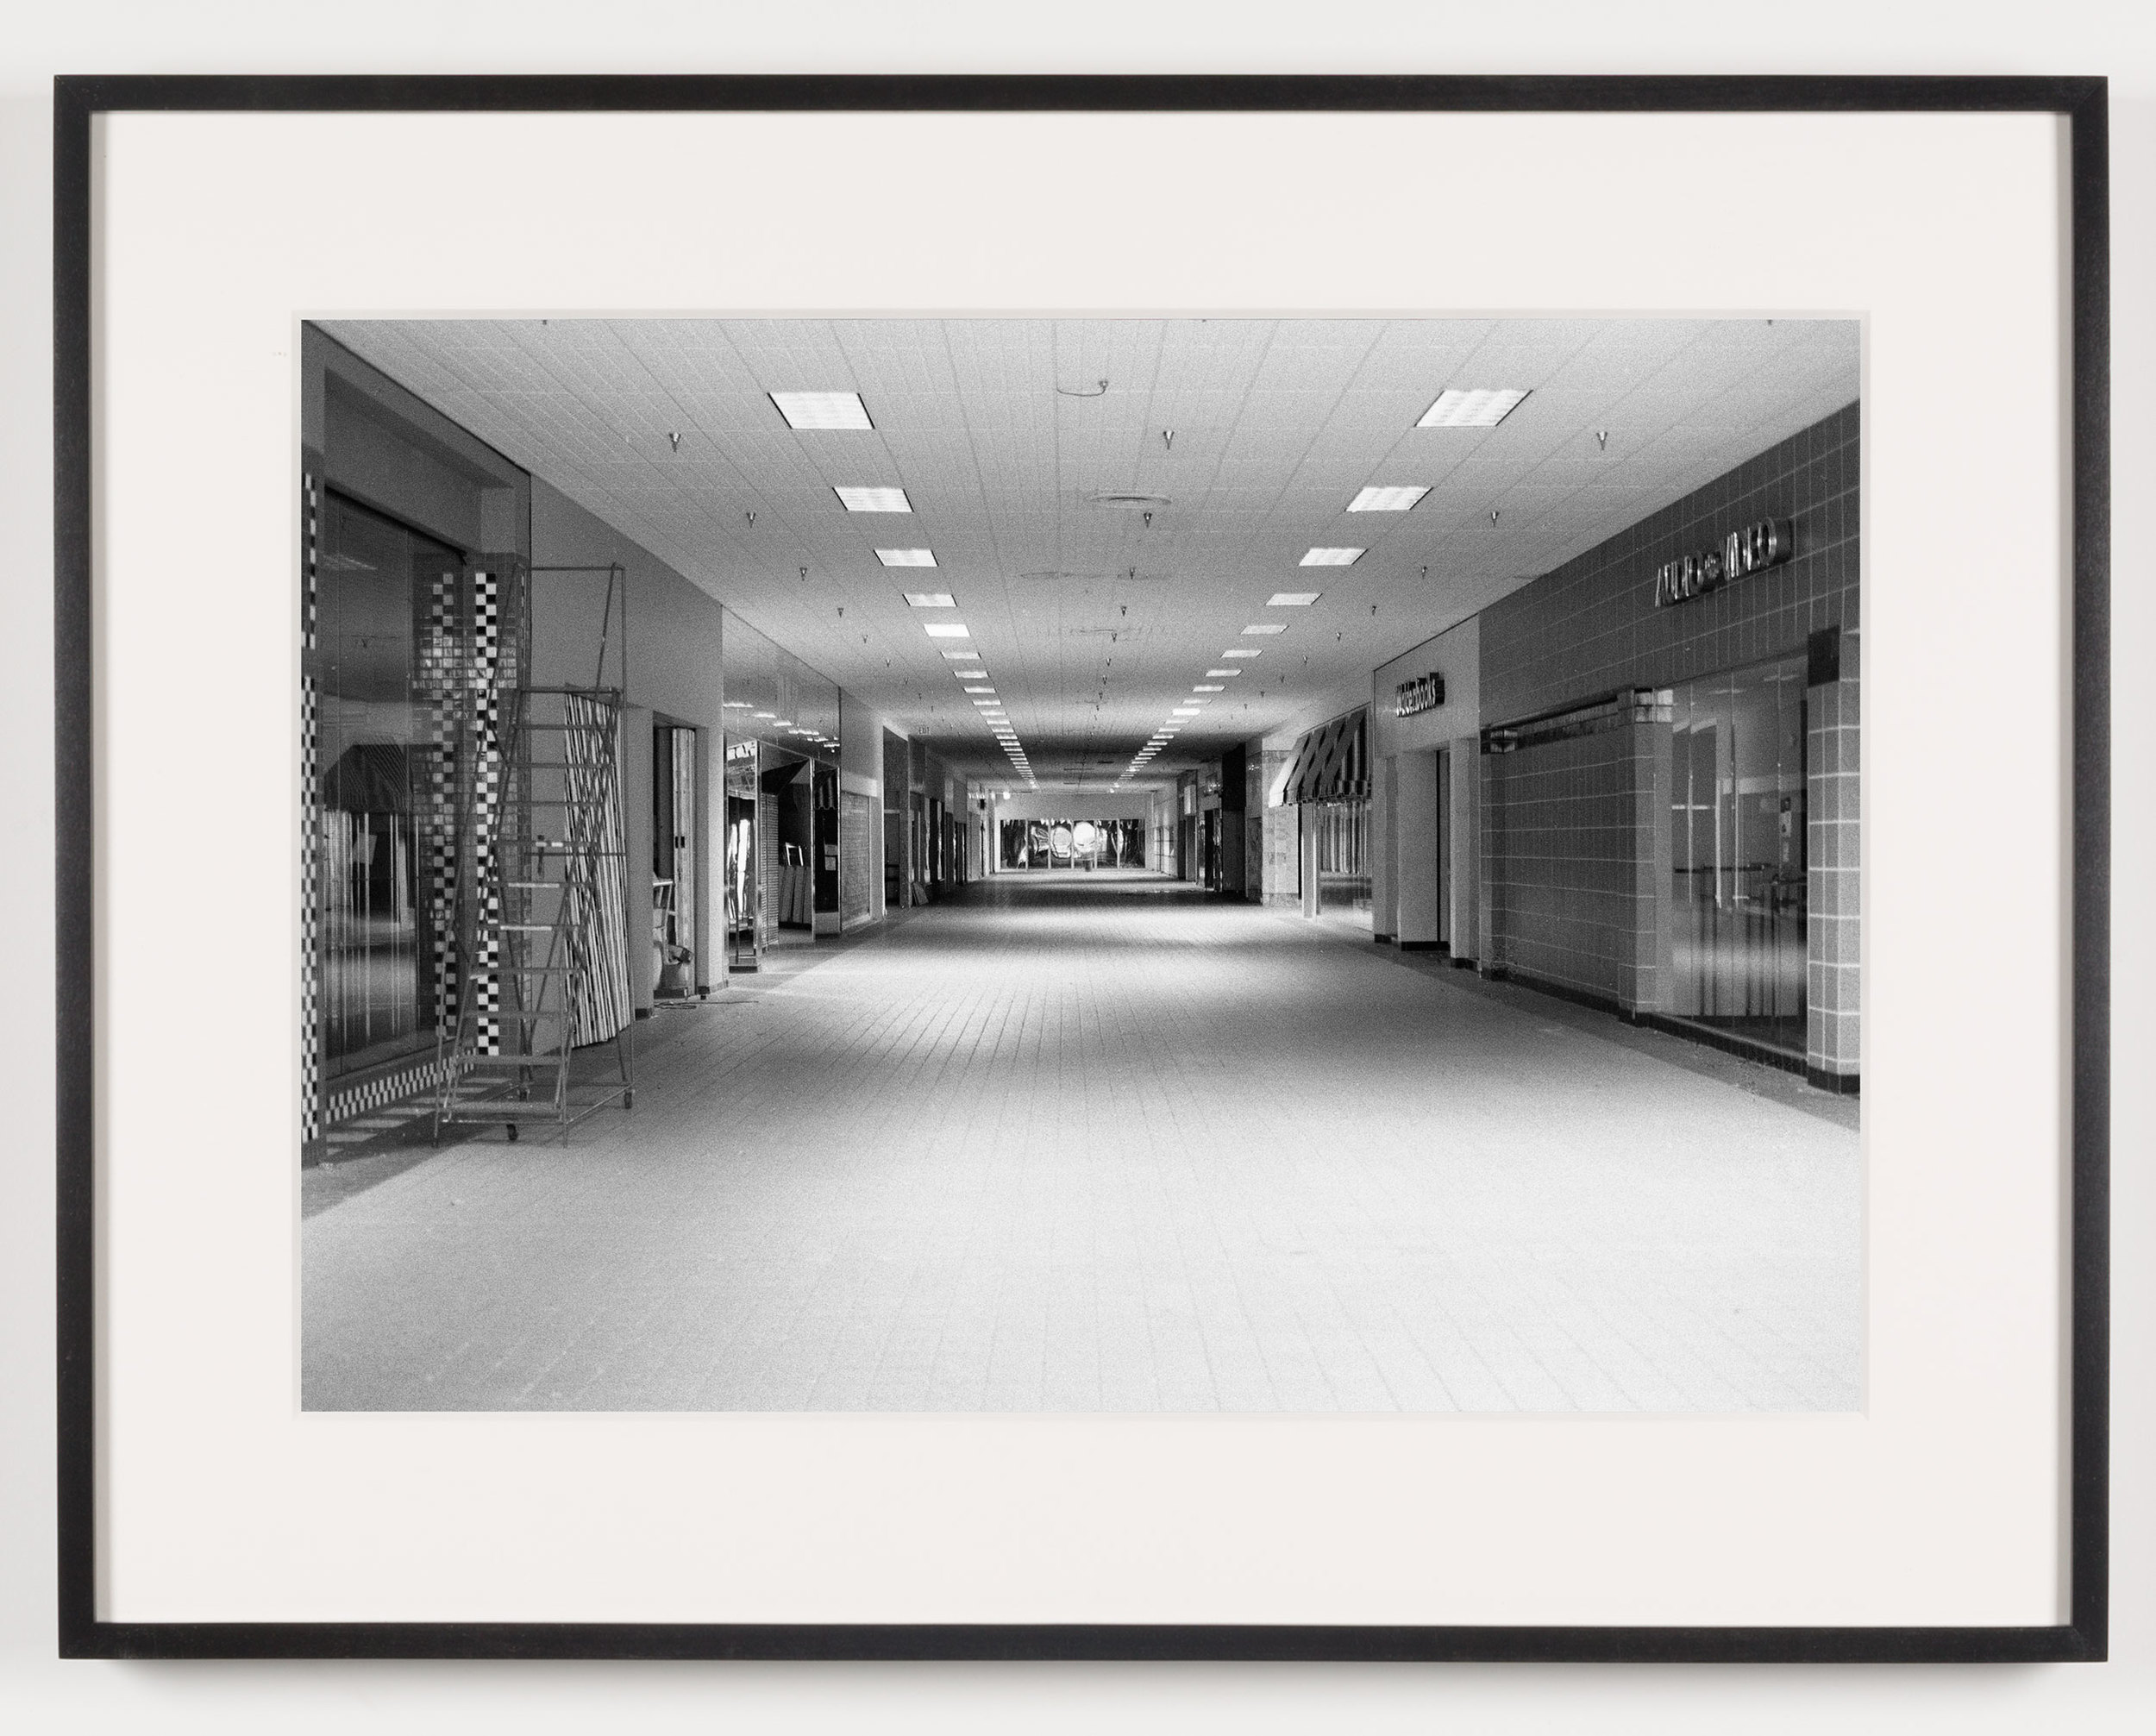 Lockport Mall (View of Interior), Lockport, NY, Est. 1971, Demo. 2011    2011   Epson Ultrachrome K3 archival ink jet print on Hahnemühle Photo Rag paper  21 5/8 x 28 1/8 inches   A Diagram of Forces, 2011